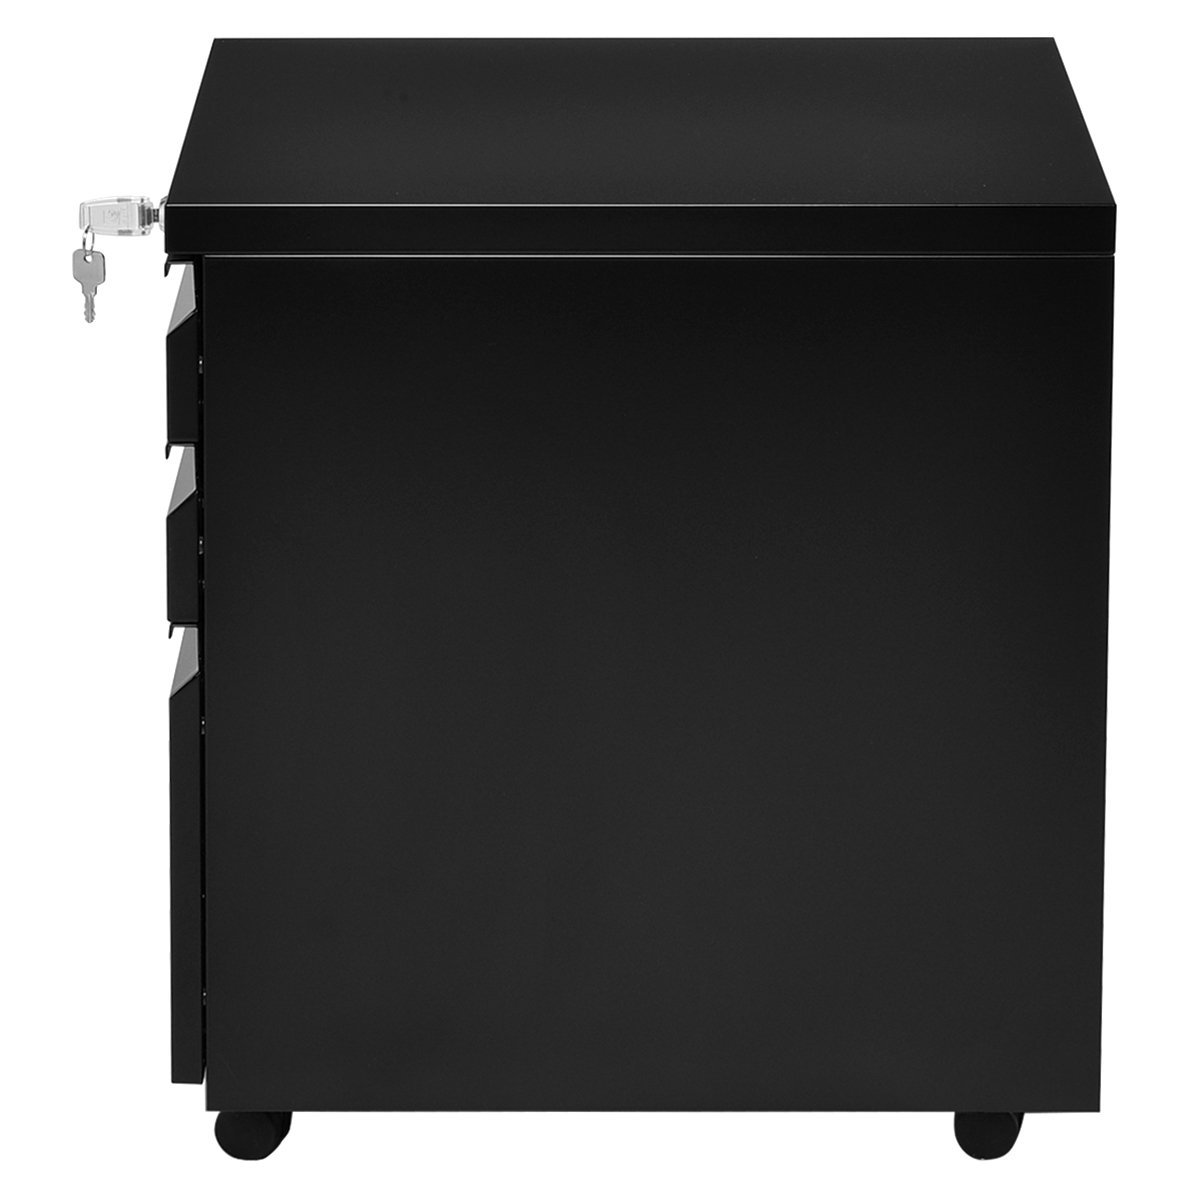 Giantex Rolling Mobile File W/3 Lockable Drawers and Pedestal for Office Study Room Home Steel Storage Cabinet by Giantex (Image #7)